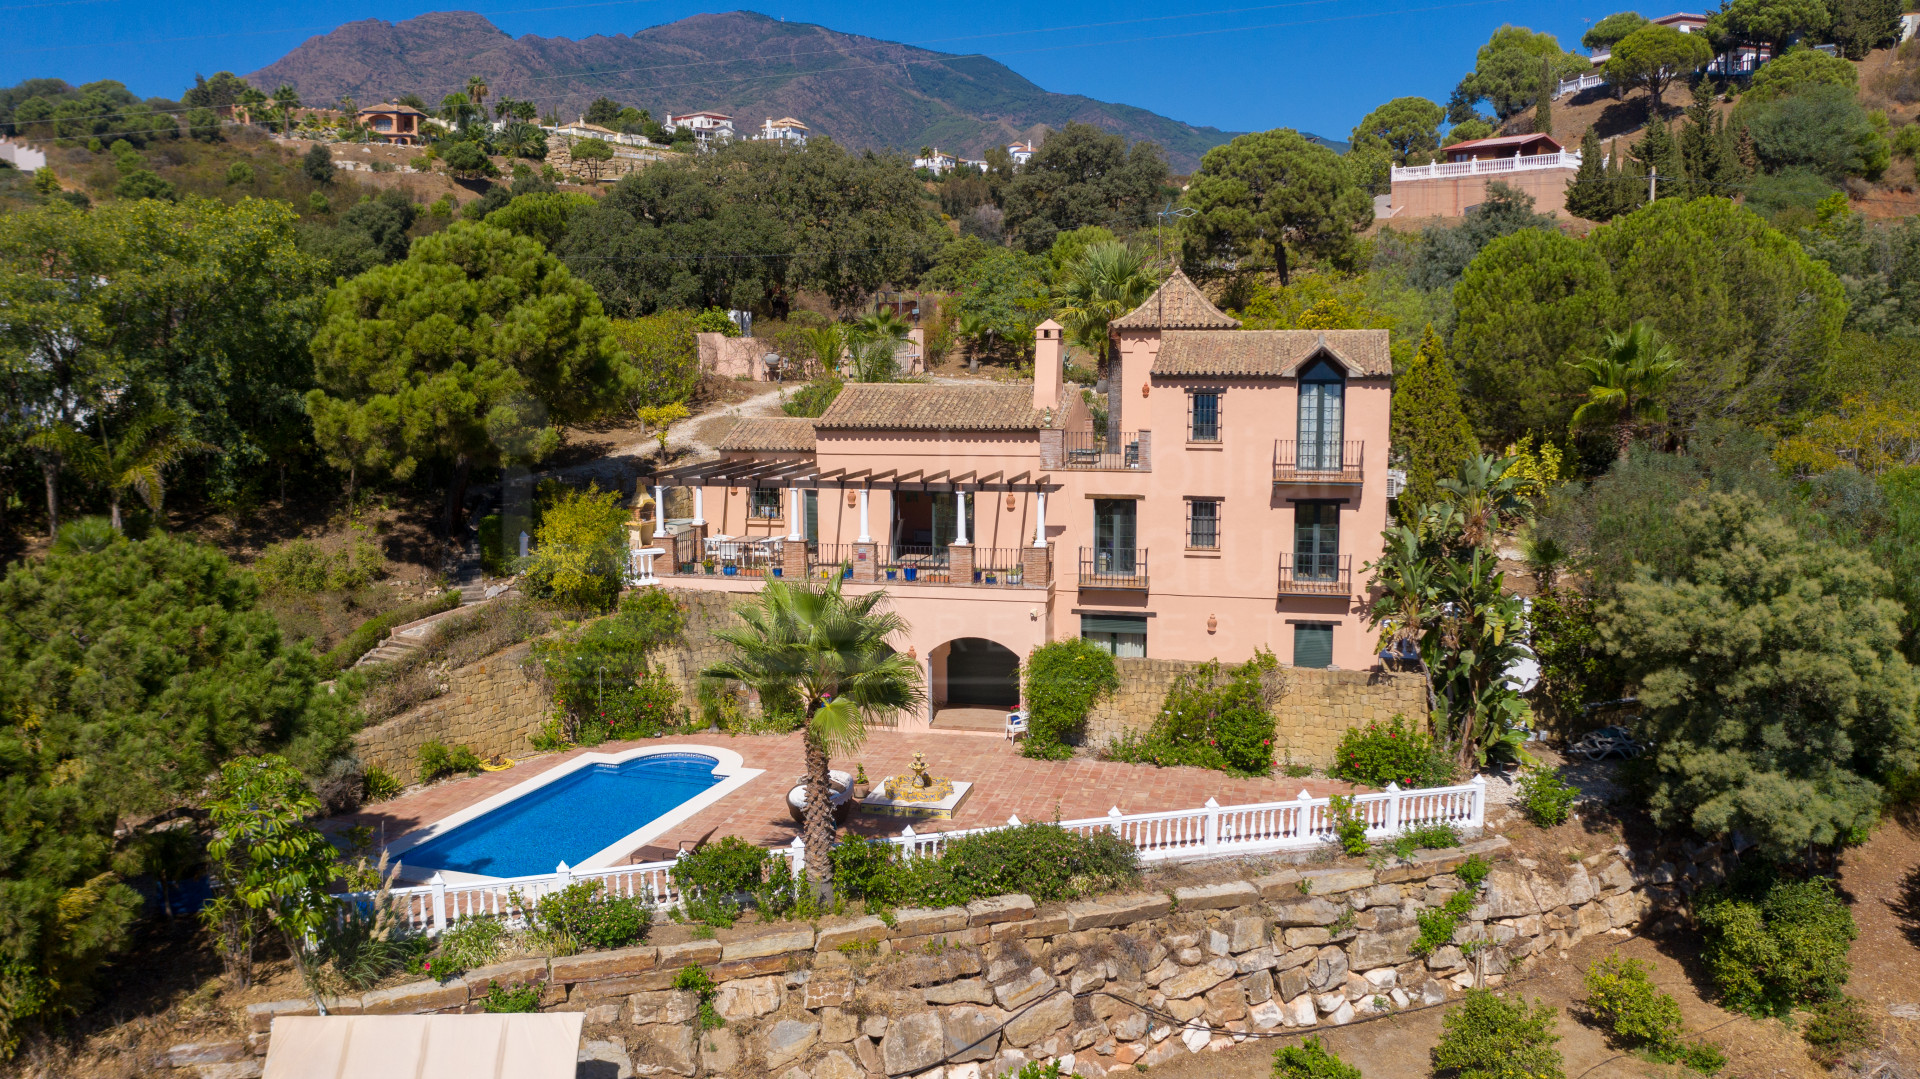 Four bedroom country villa for sale with elevated sea views in Los Reales, Estepona